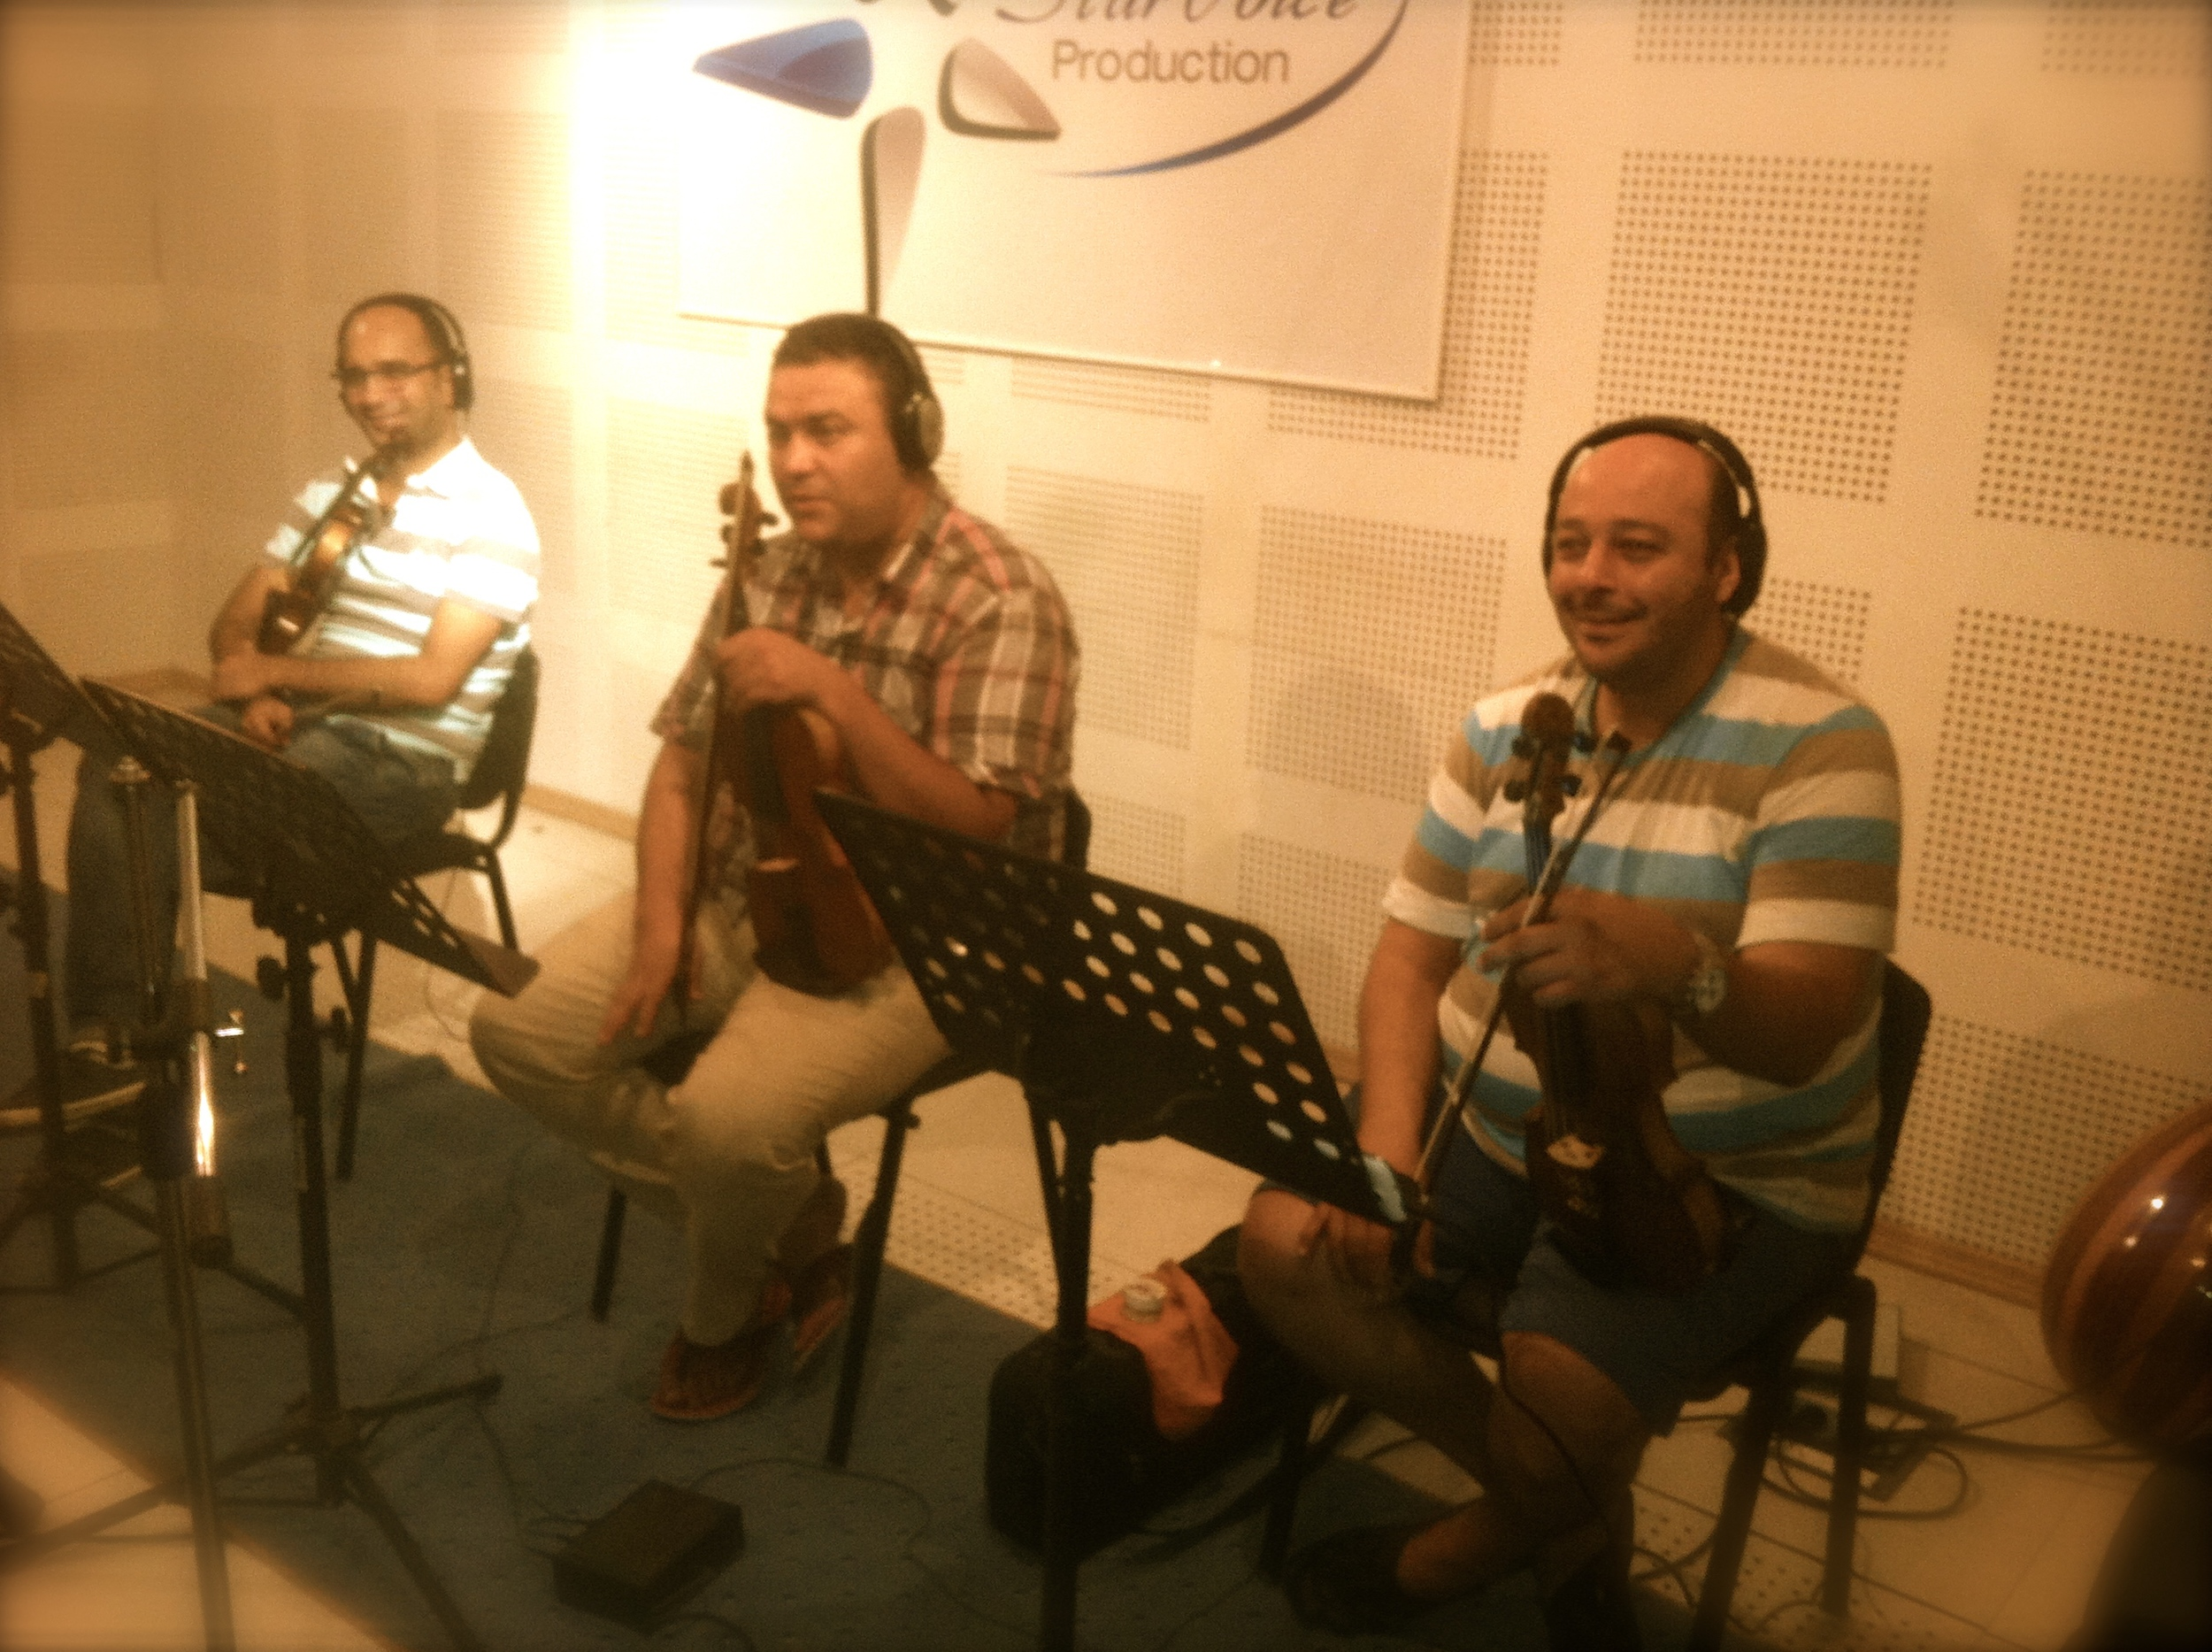 The violinsection: Mohamed, Otelo and Samir.